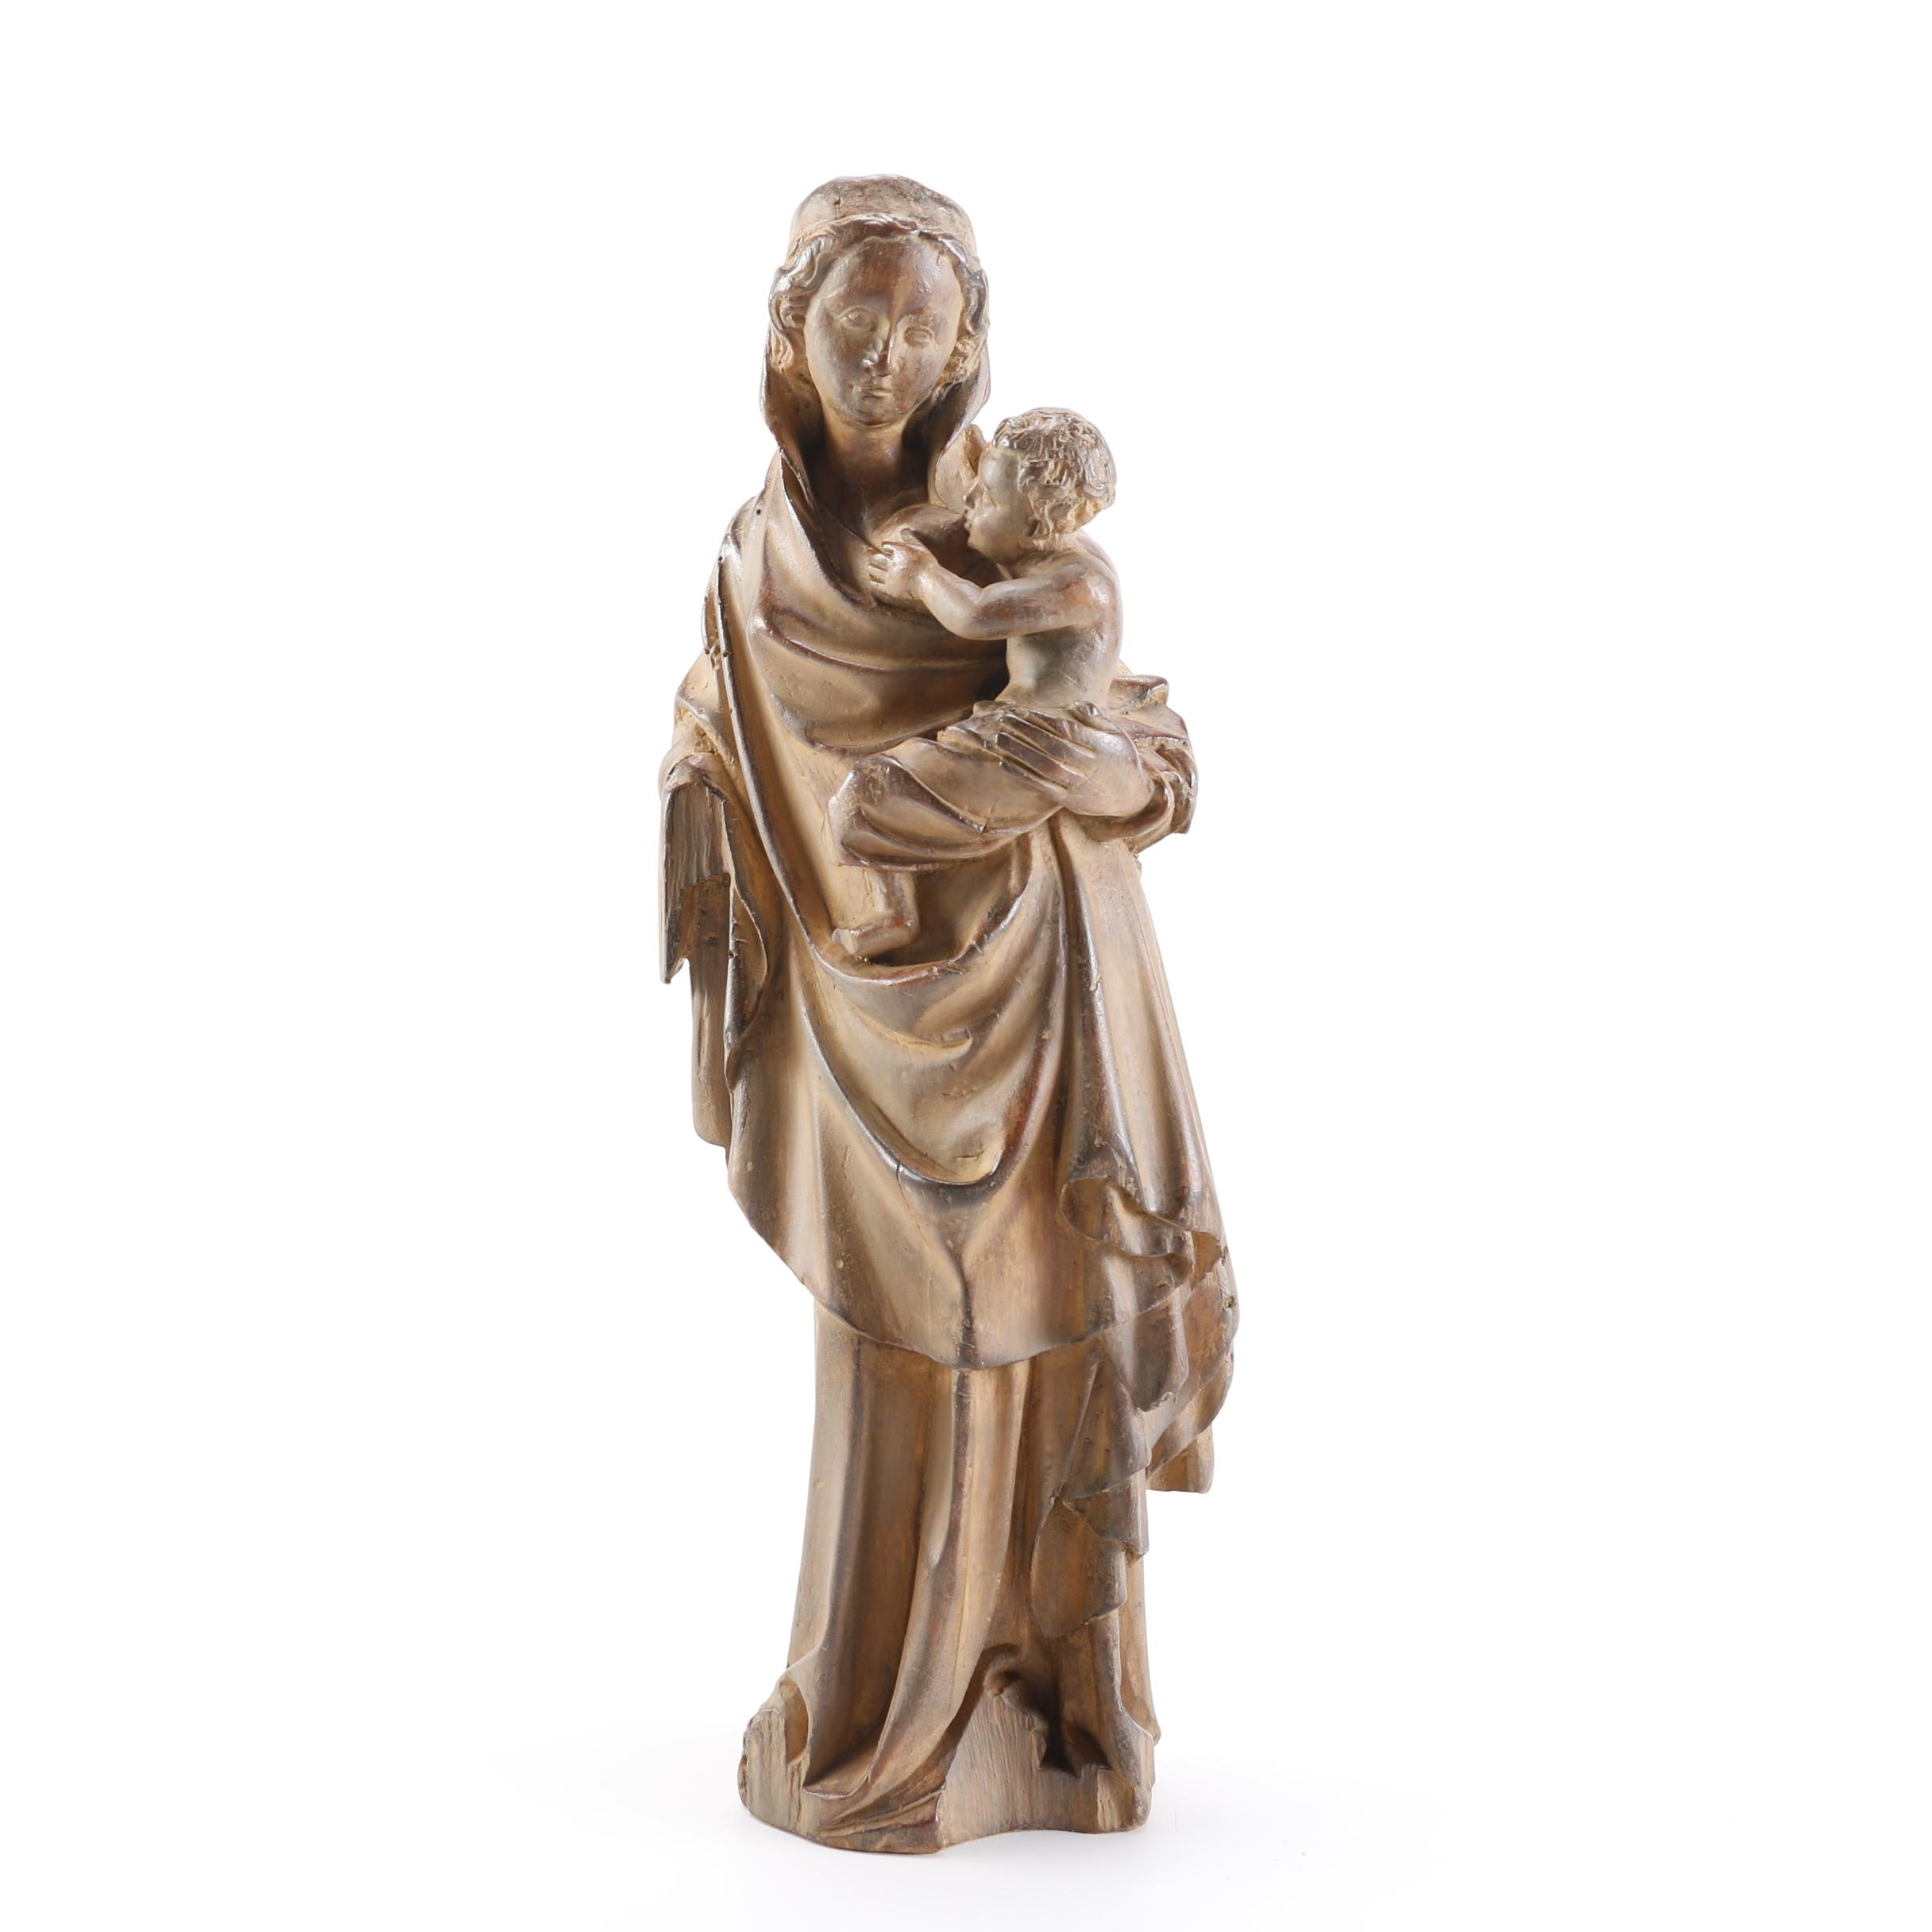 Louvre Museum Reproduction of Virgin and Child